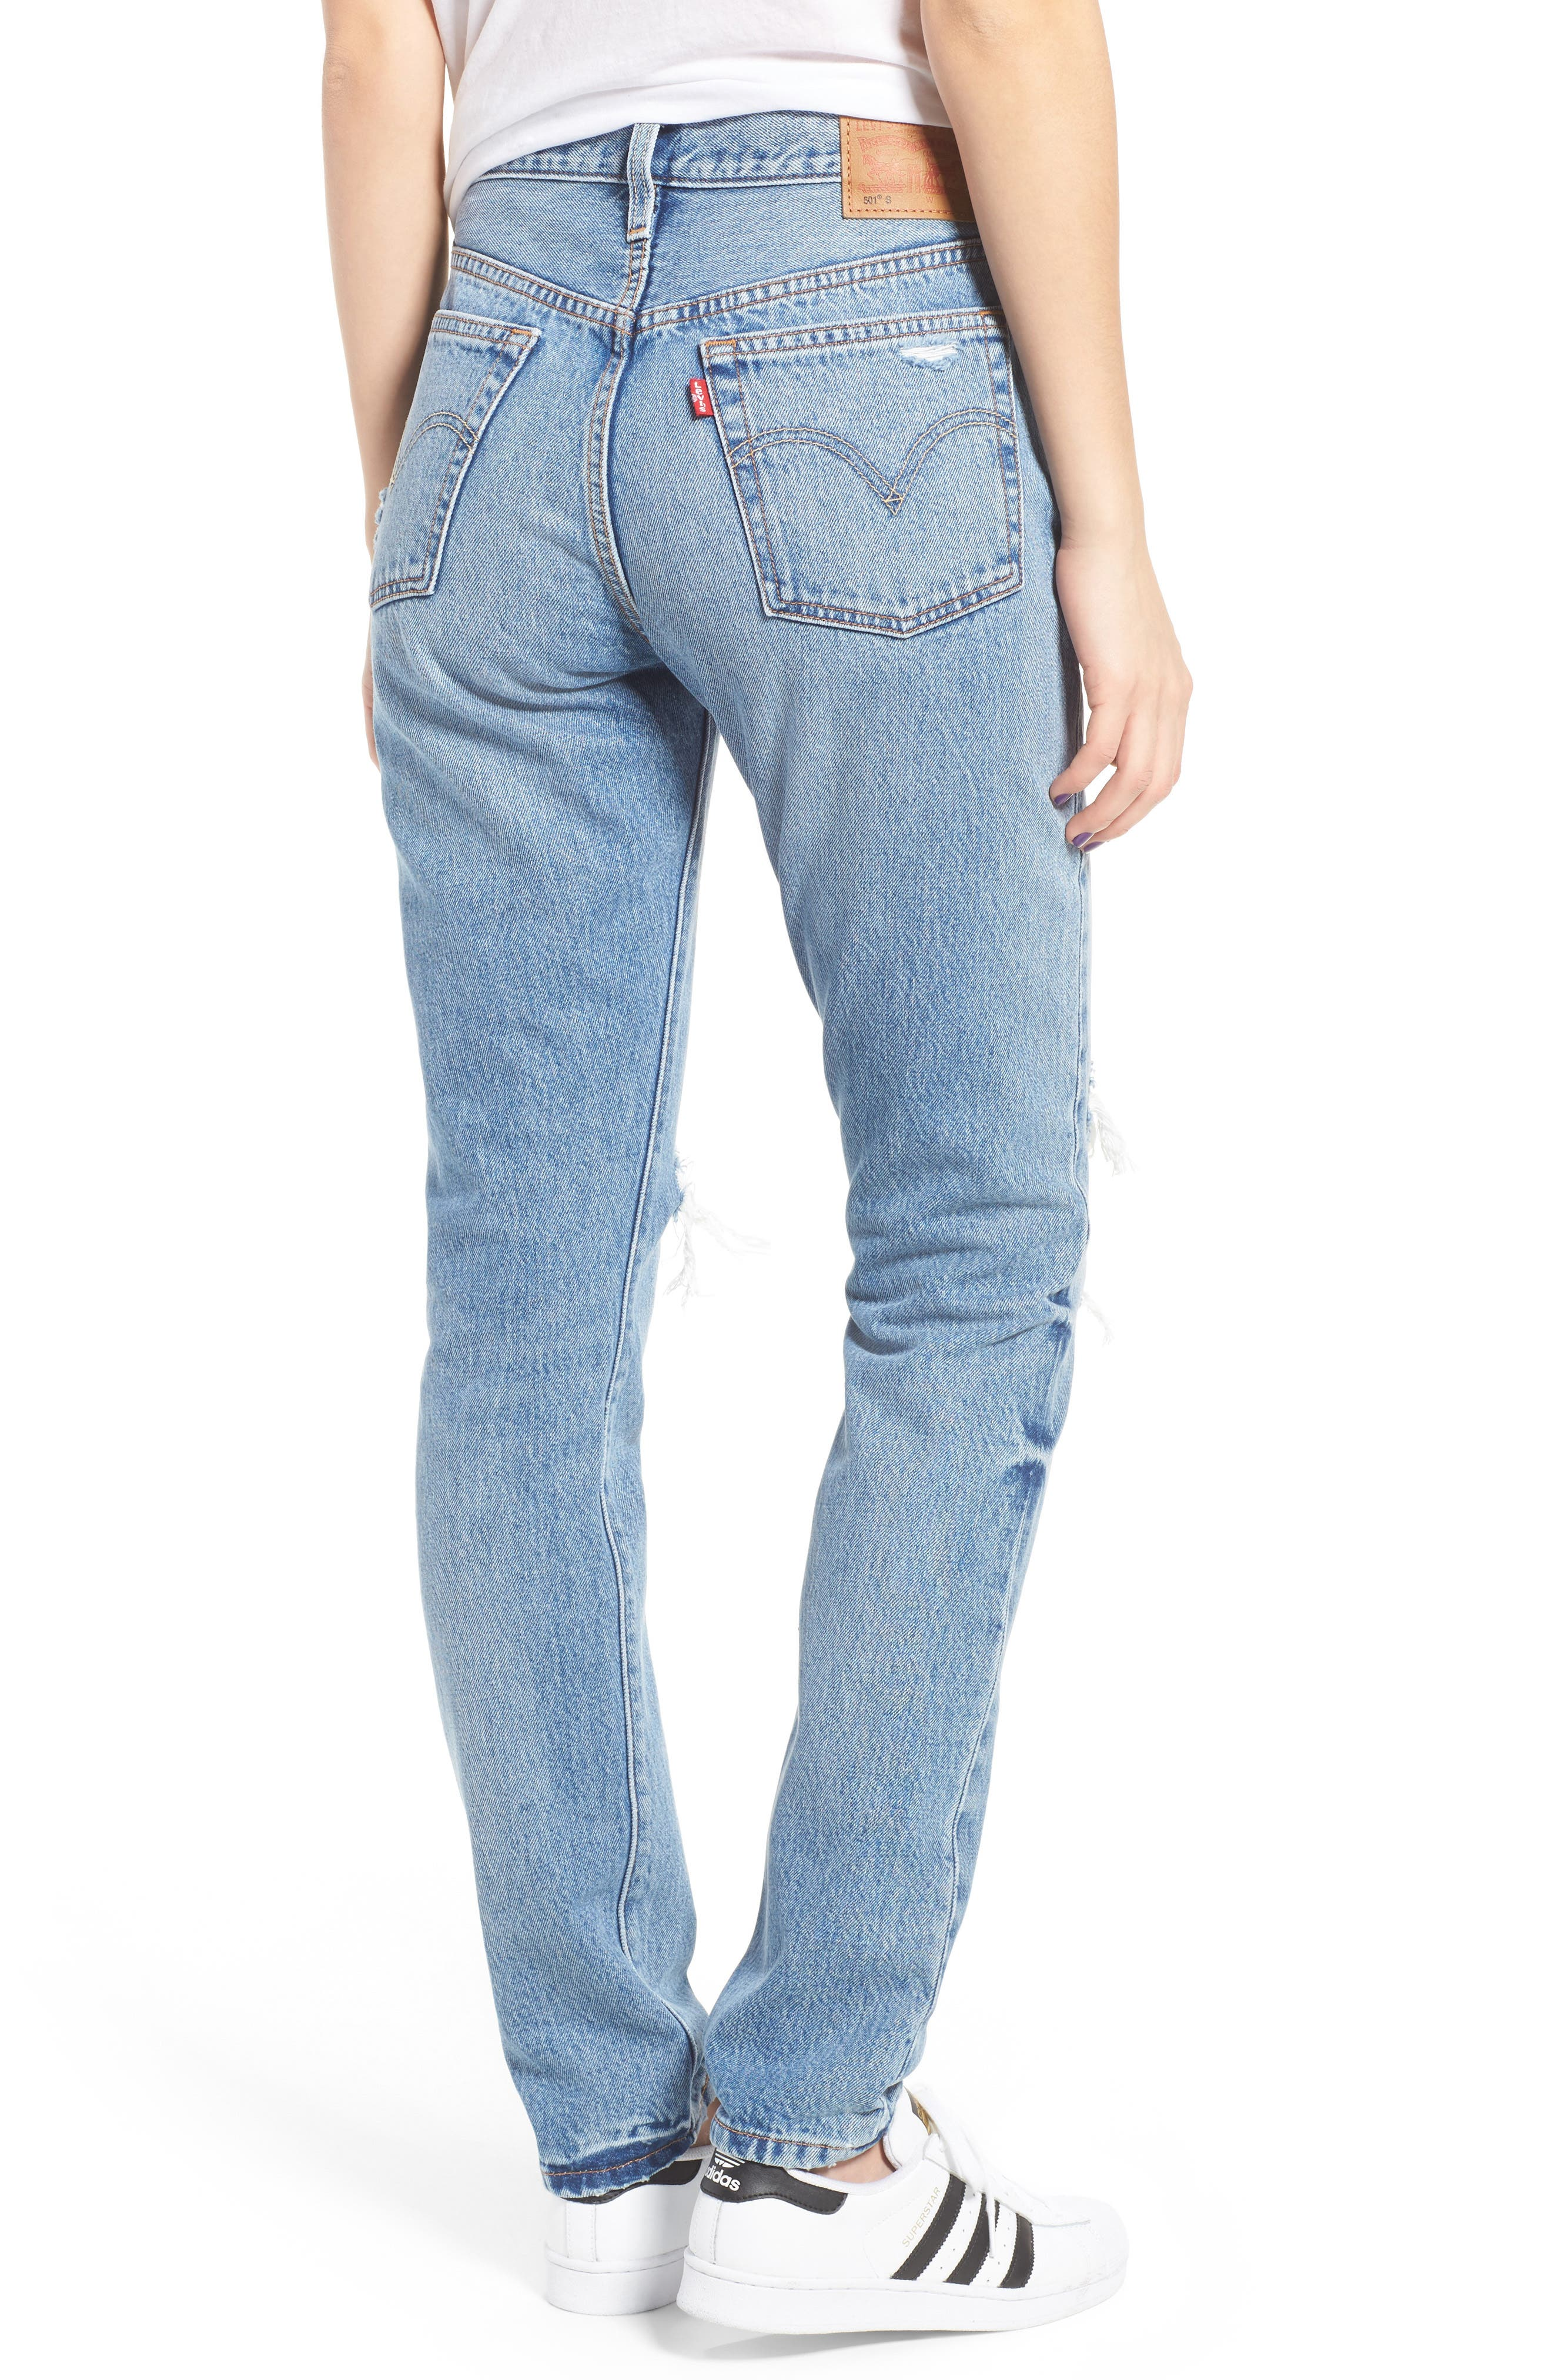 LEVI'S<SUP>®</SUP>, Levis<sup>®</sup> 501 Ripped Skinny Jeans, Alternate thumbnail 2, color, 400